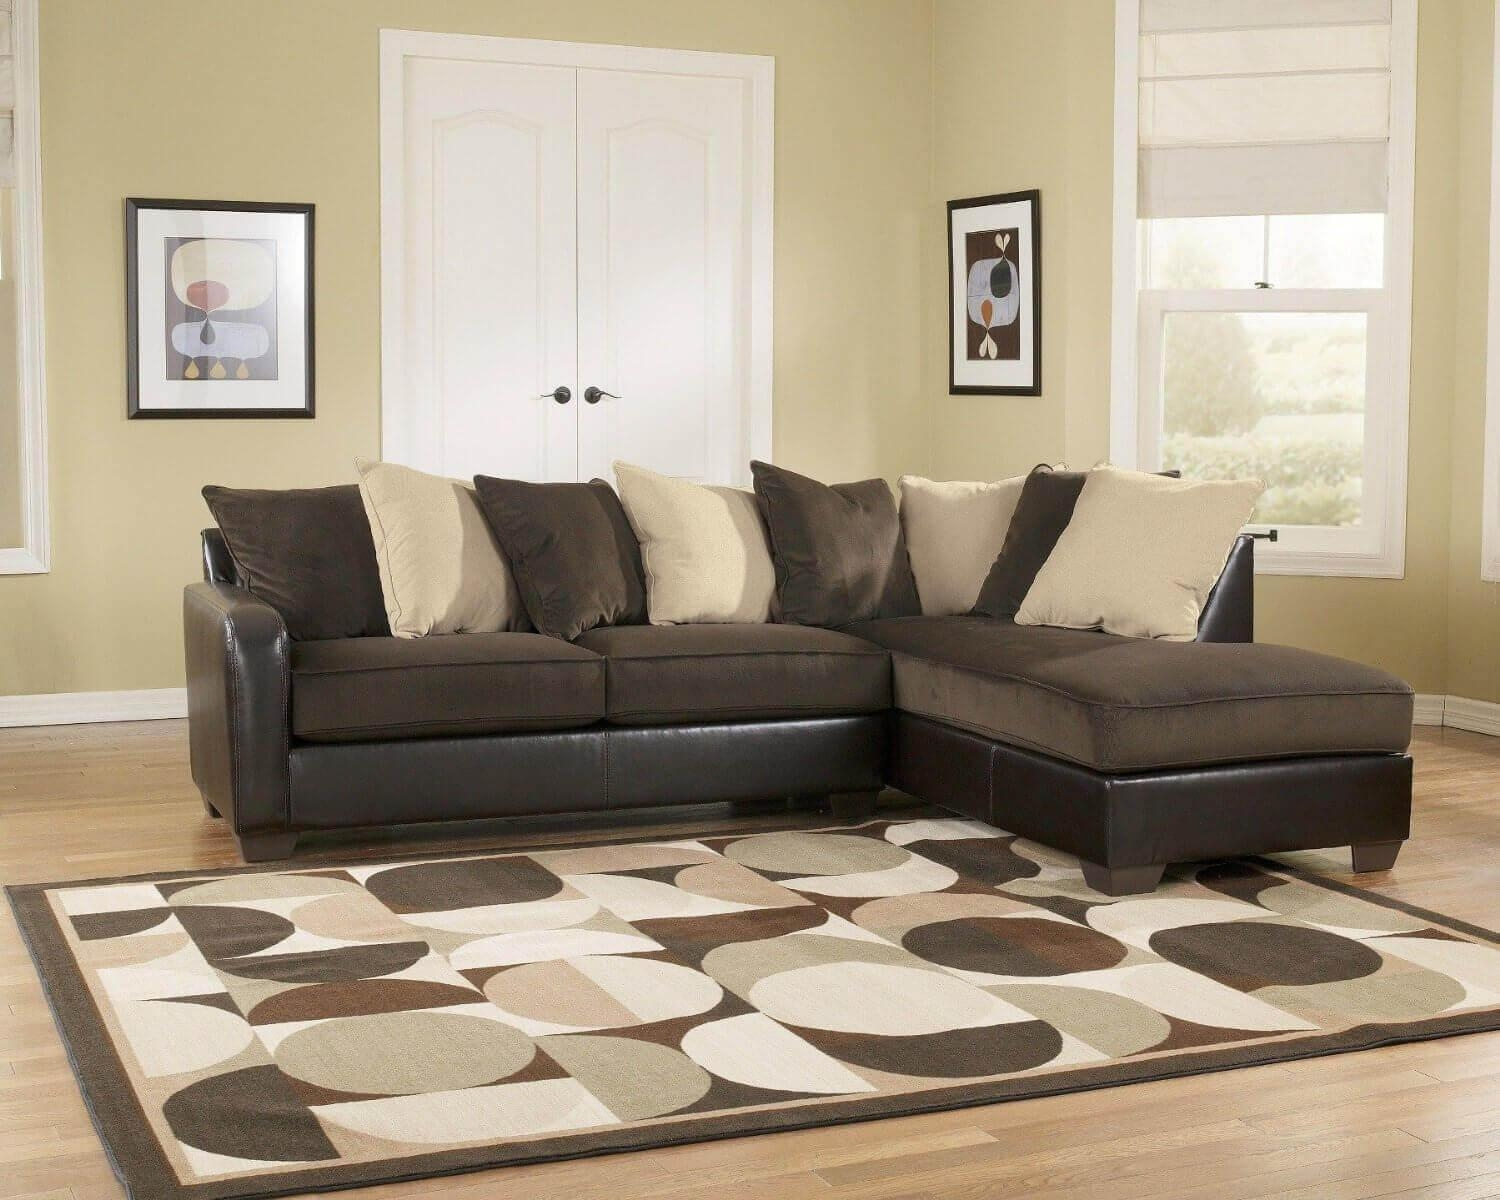 Chocolate Brown Sectional Sofa With Chaise – Fjellkjeden With Chocolate Brown Sectional Sofa (View 4 of 15)